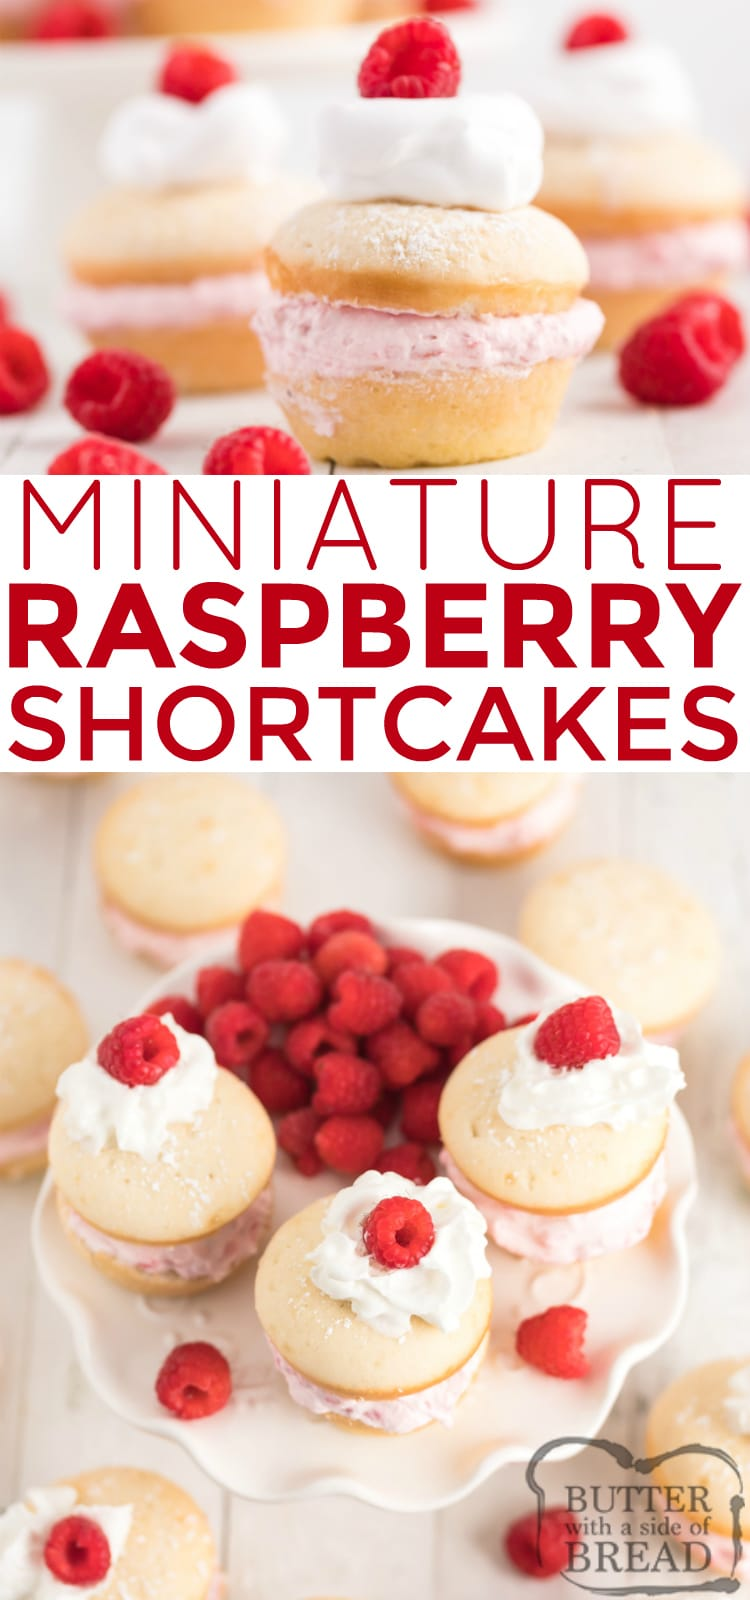 Mini Raspberry Shortcakes are made with a cake mix as the base, while the filling is made with fresh raspberries and real whipped cream. This easy shortcake recipe is absolutely delicious!